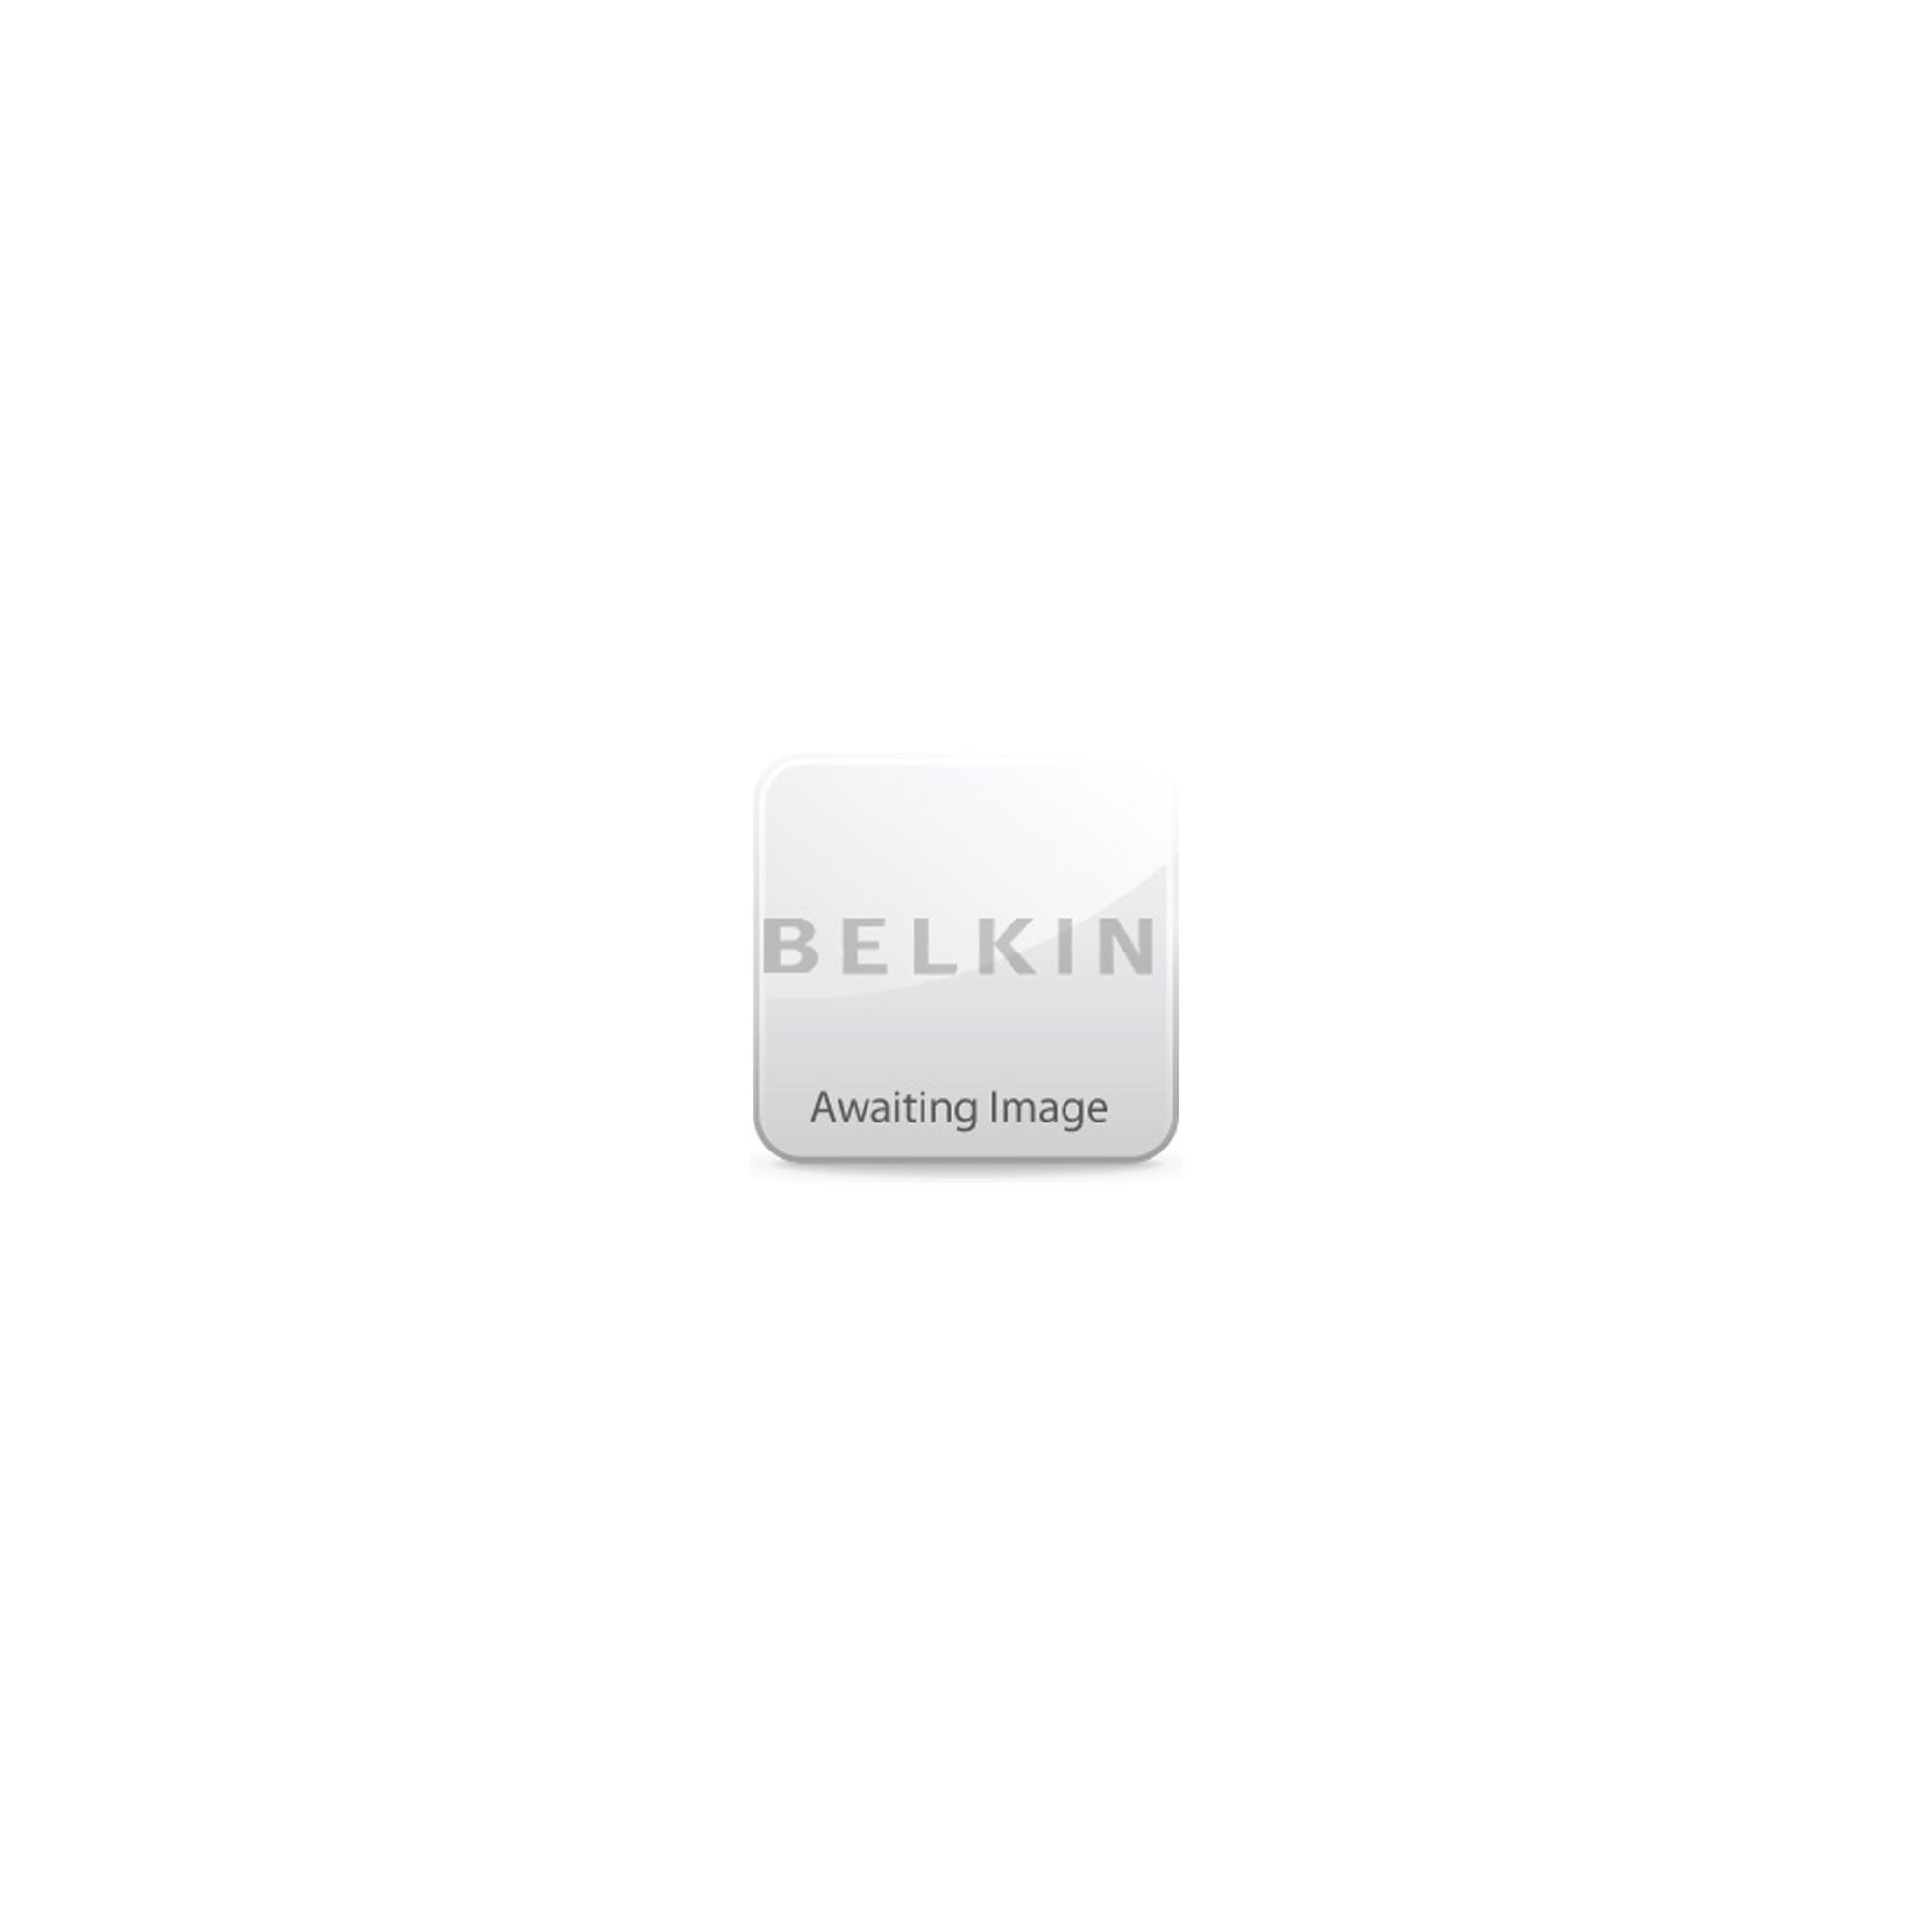 Belkin 10G CAT6a Solid Bulk Cable 305m (Grey) at Tesco Direct